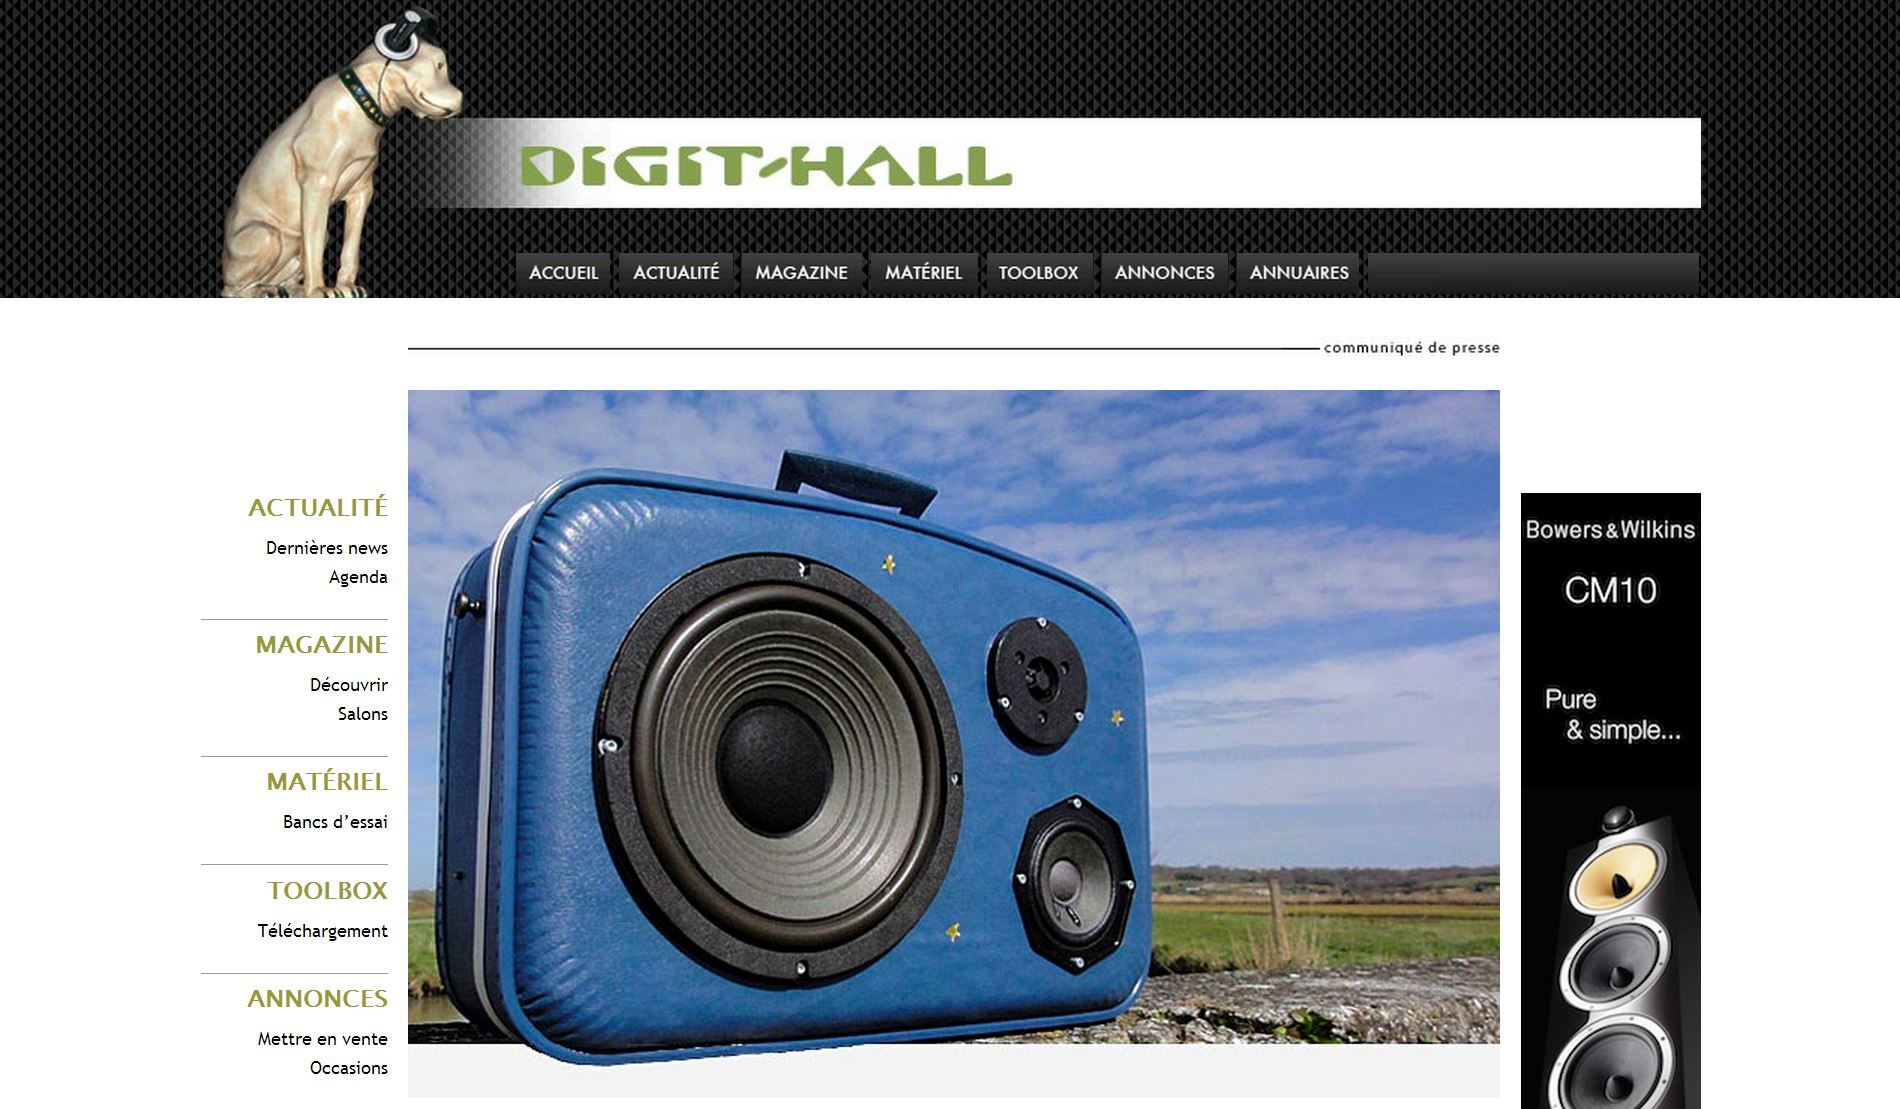 valise-musicale_article-blog_digit-hall